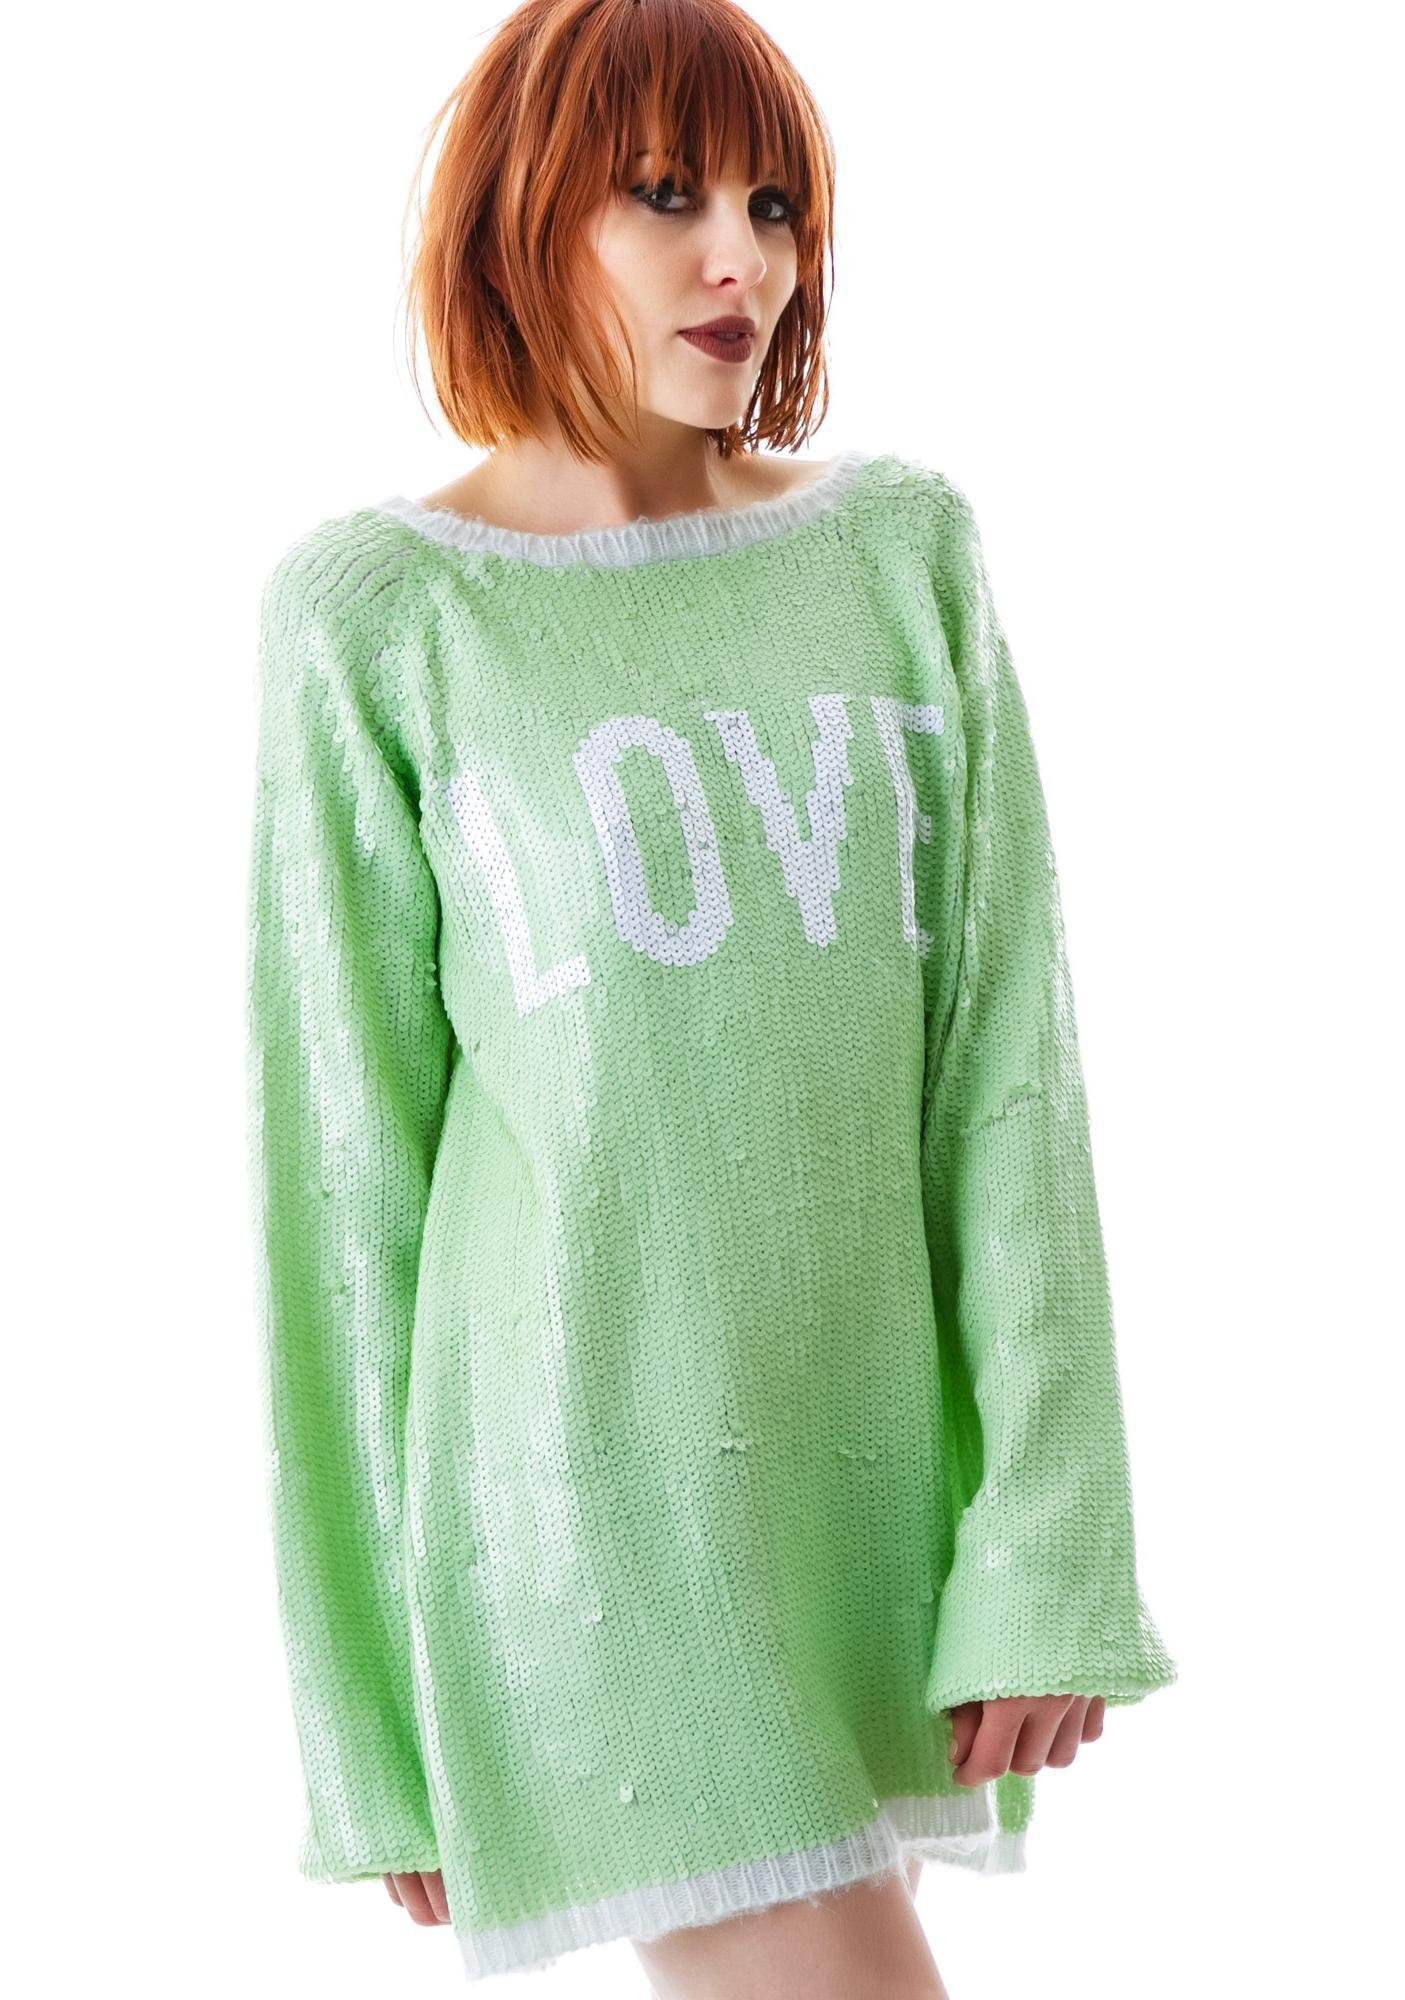 Wildfox Couture Sparkling Love California Dream Sweater